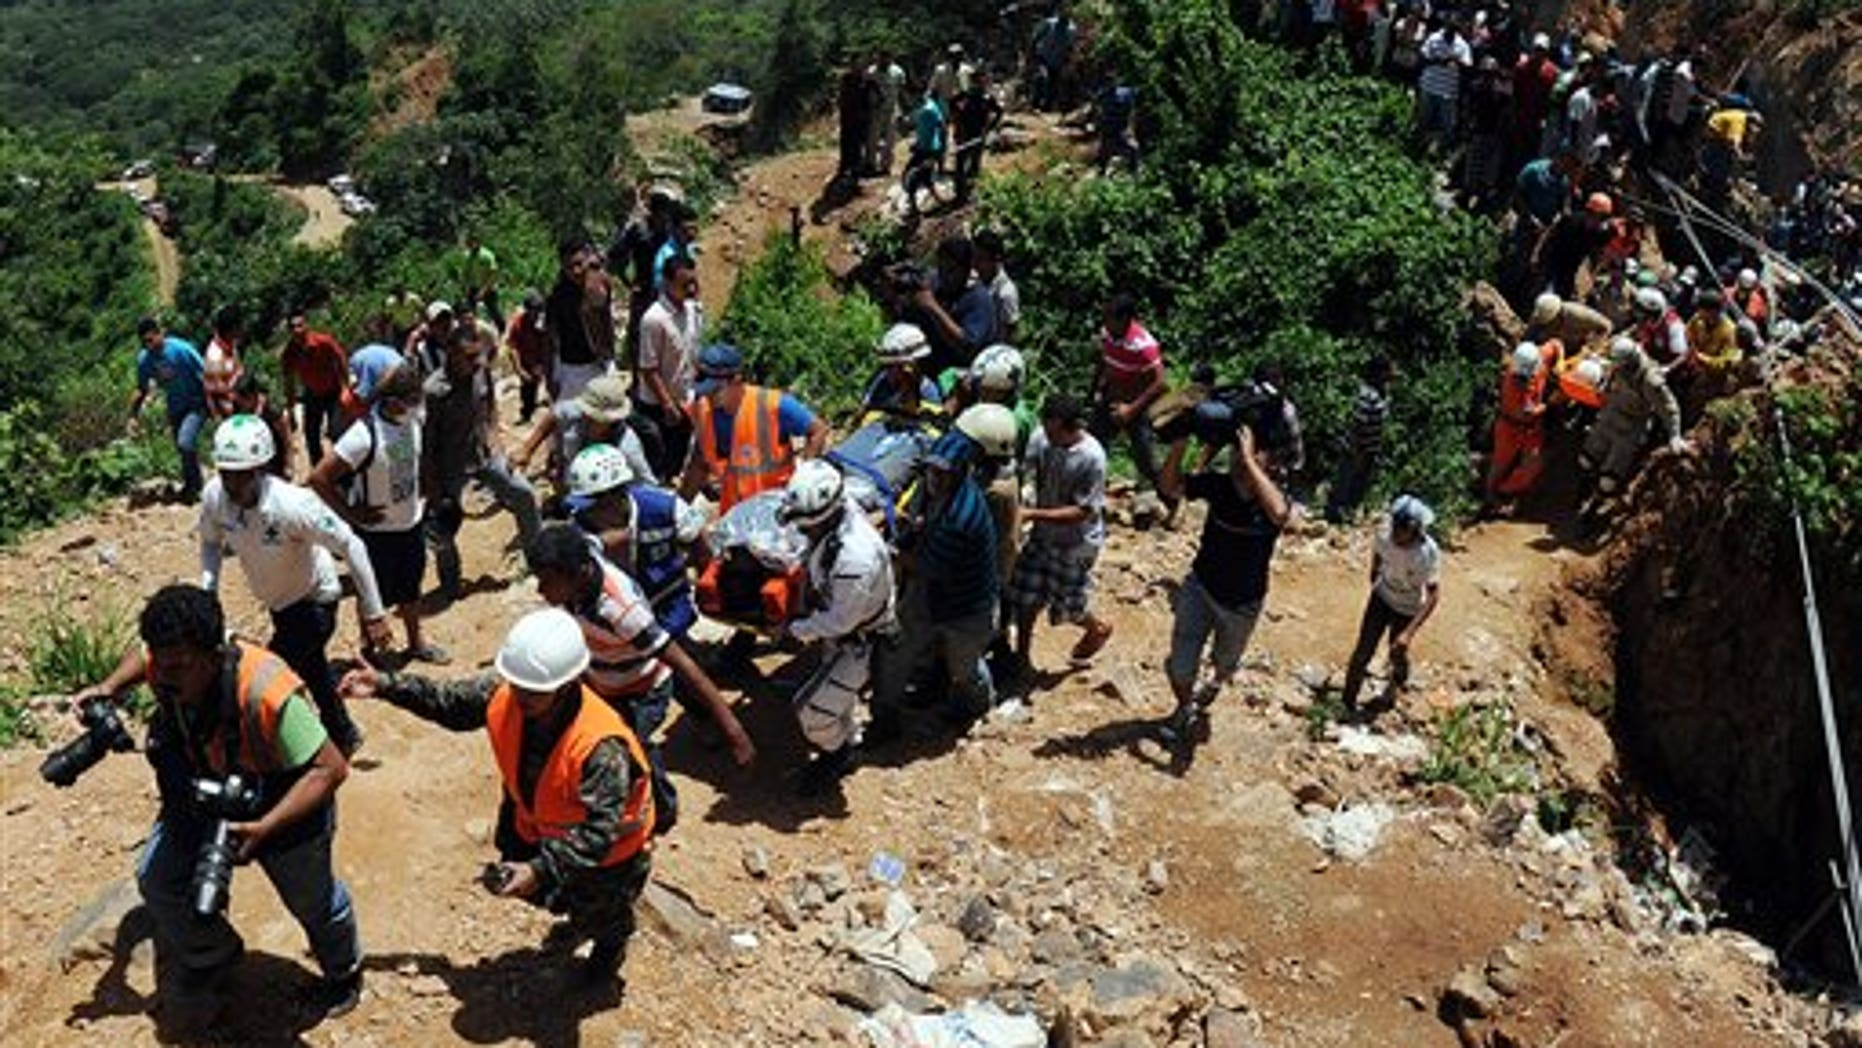 Rescue workers carry a miner who was trapped in a gold mine after a landslide in San Juan Arriba, Choluteca in southern Honduras, Friday July 4, 2014. Three miners were rescued Friday after spending more than two days trapped following a collapse at a small, wildcat gold mine. Eight others remain missing. (AP Photo/Fernando Antonio)